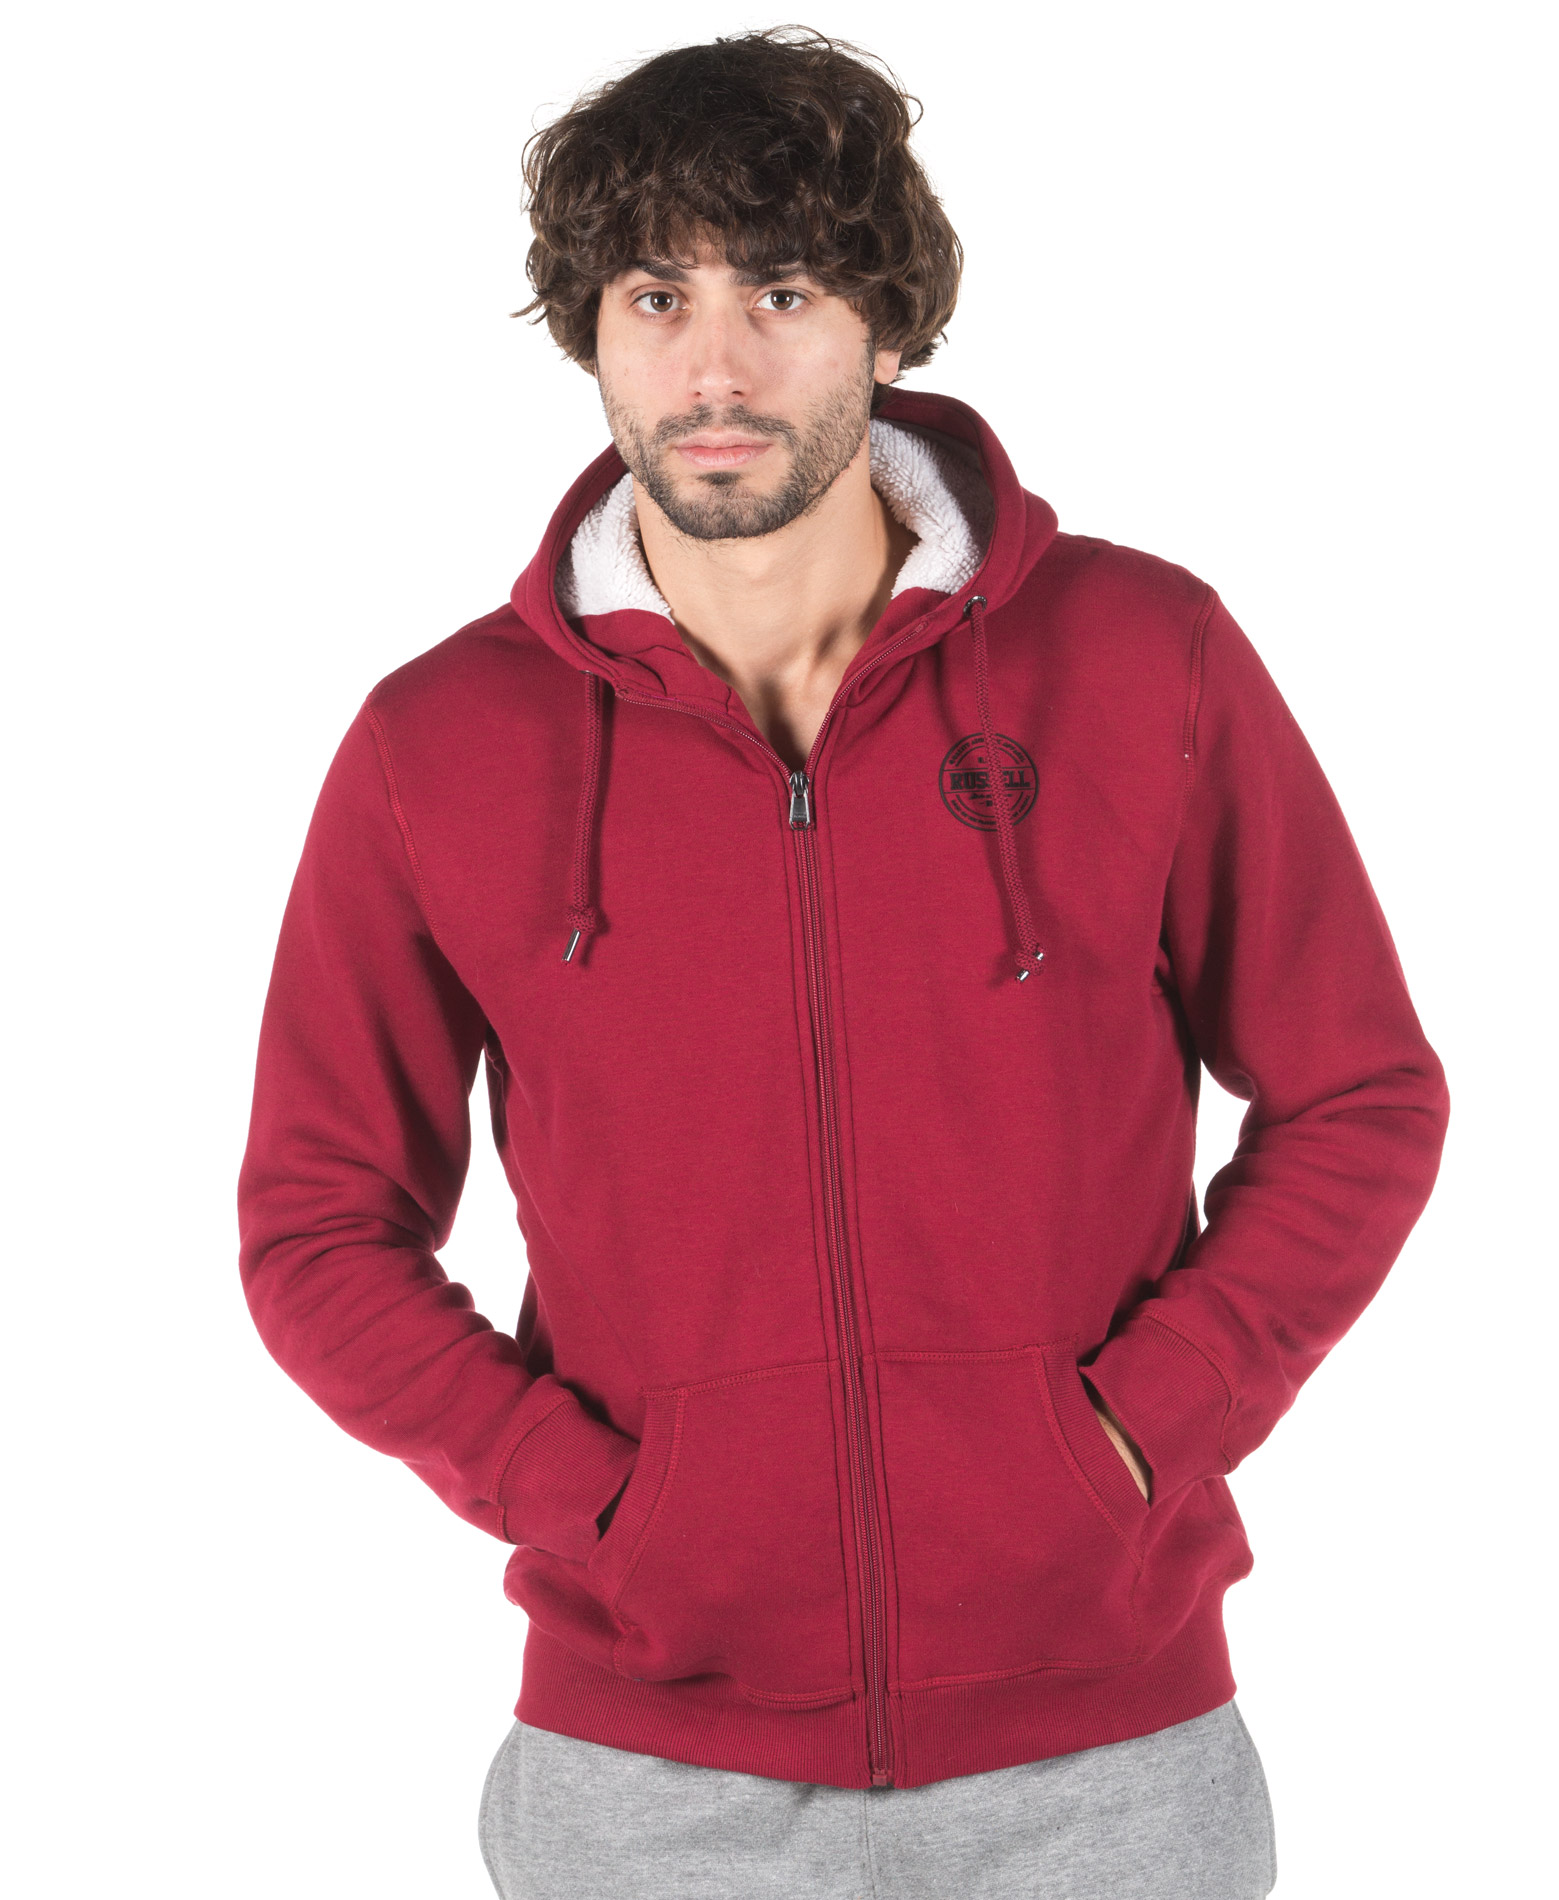 RUSSELL ATHLETIC ZIP THROUGH SHERPA LINED HOODY A7-028-2-441 Μπορντό